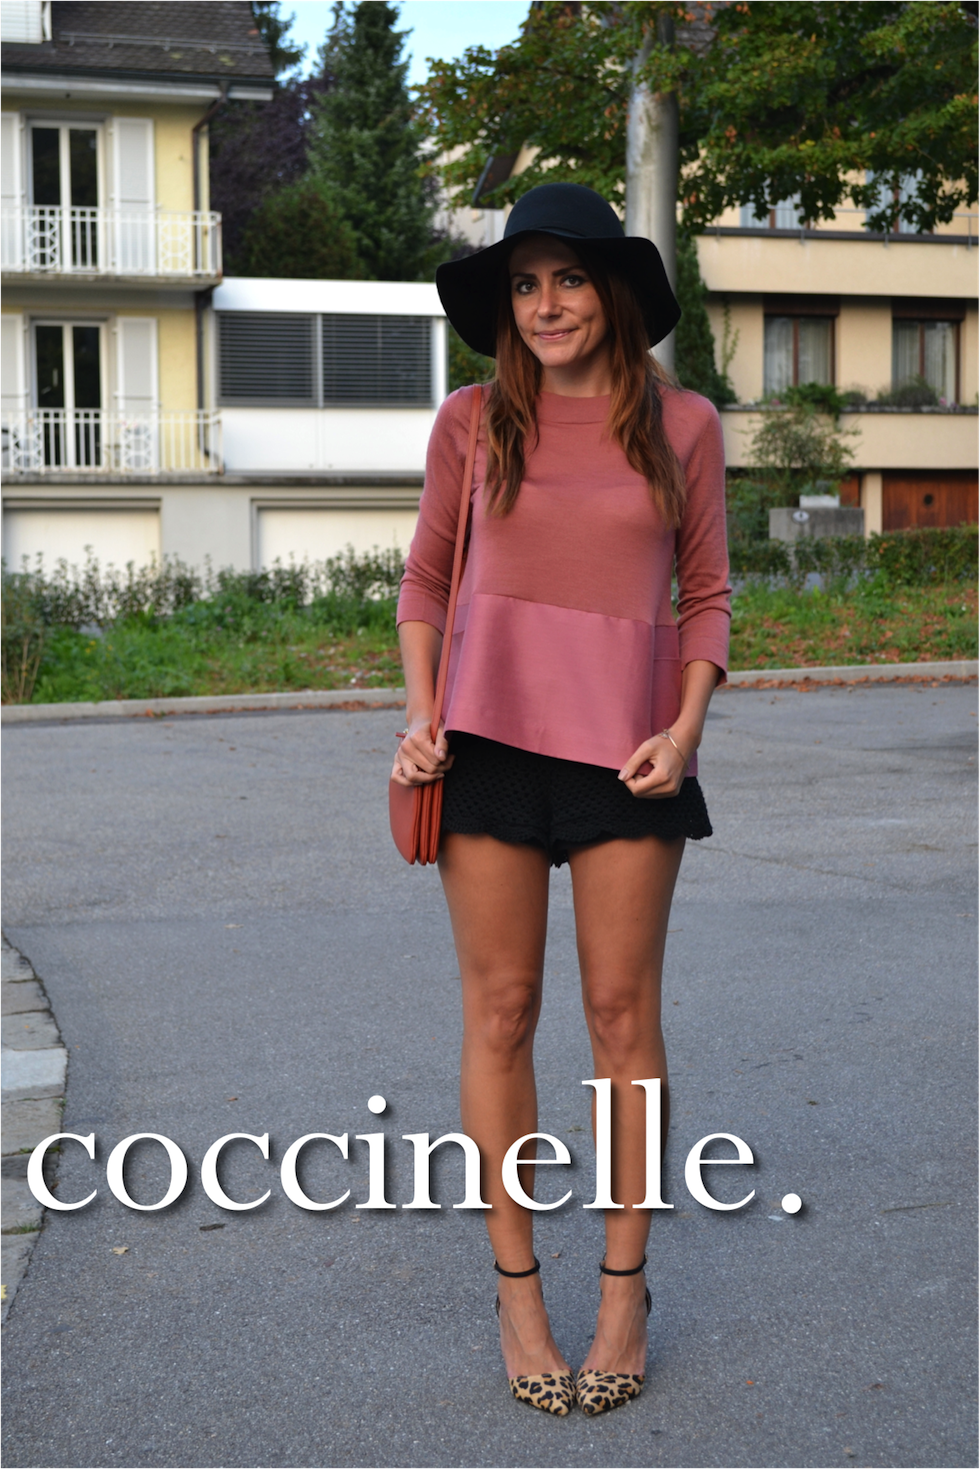 \Coccinelle hat for autumn 2014_mekivi title\